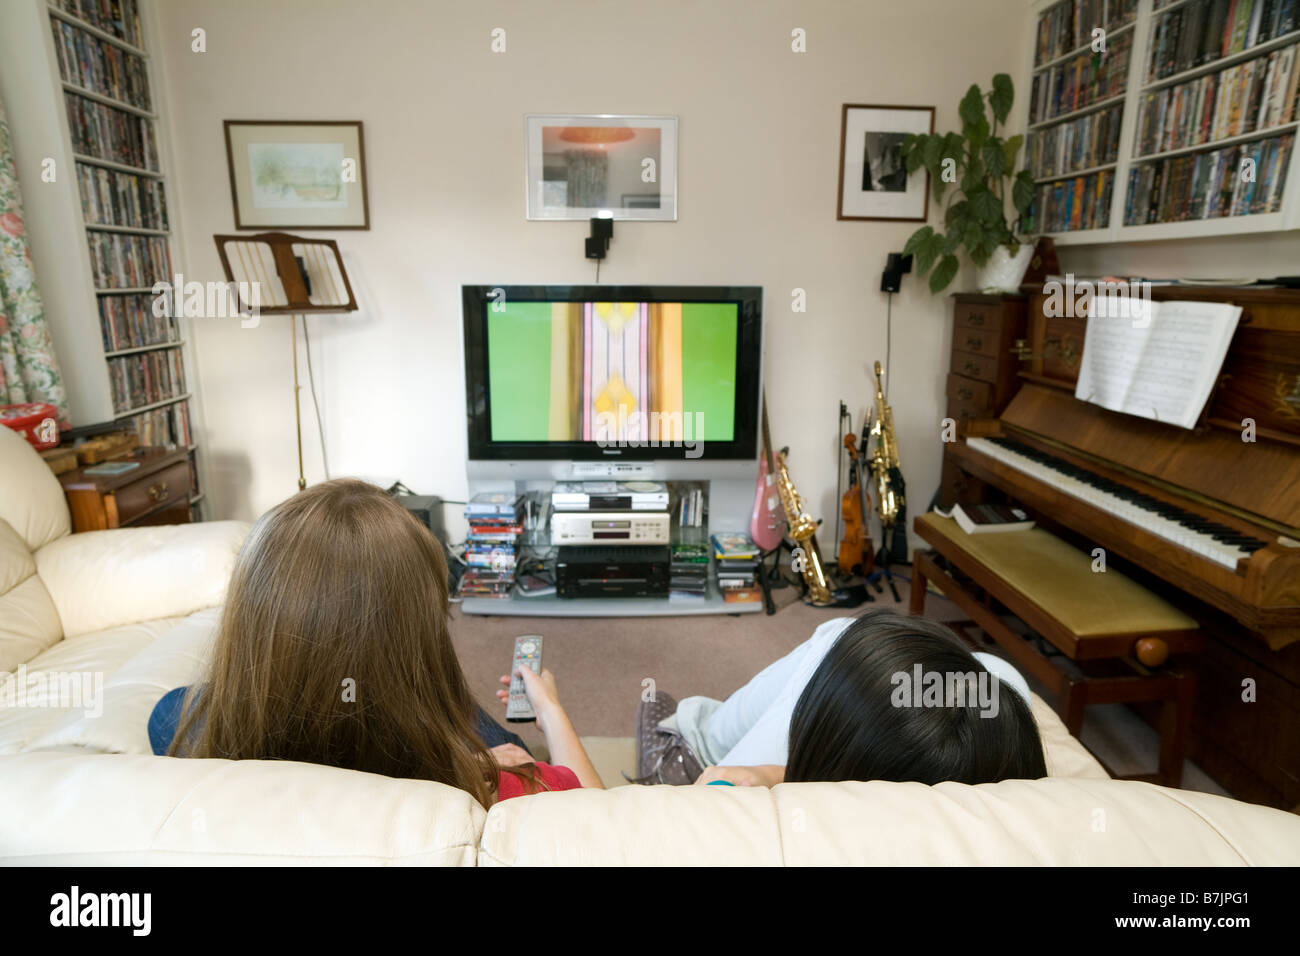 Two teenage girls watching a large TV, UK - Stock Image